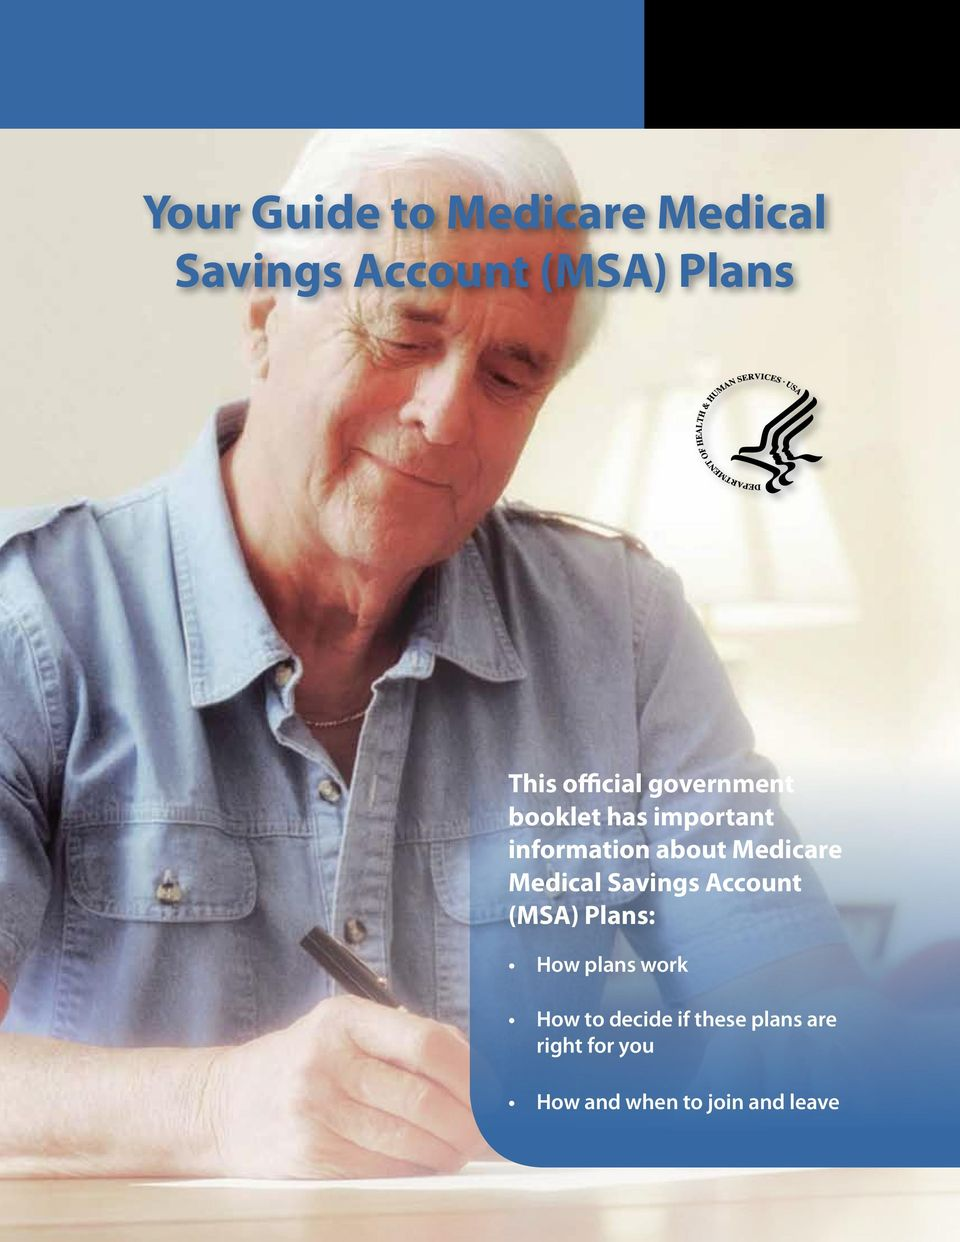 Medicare Medical Savings Account (MSA) Plans: How plans work How